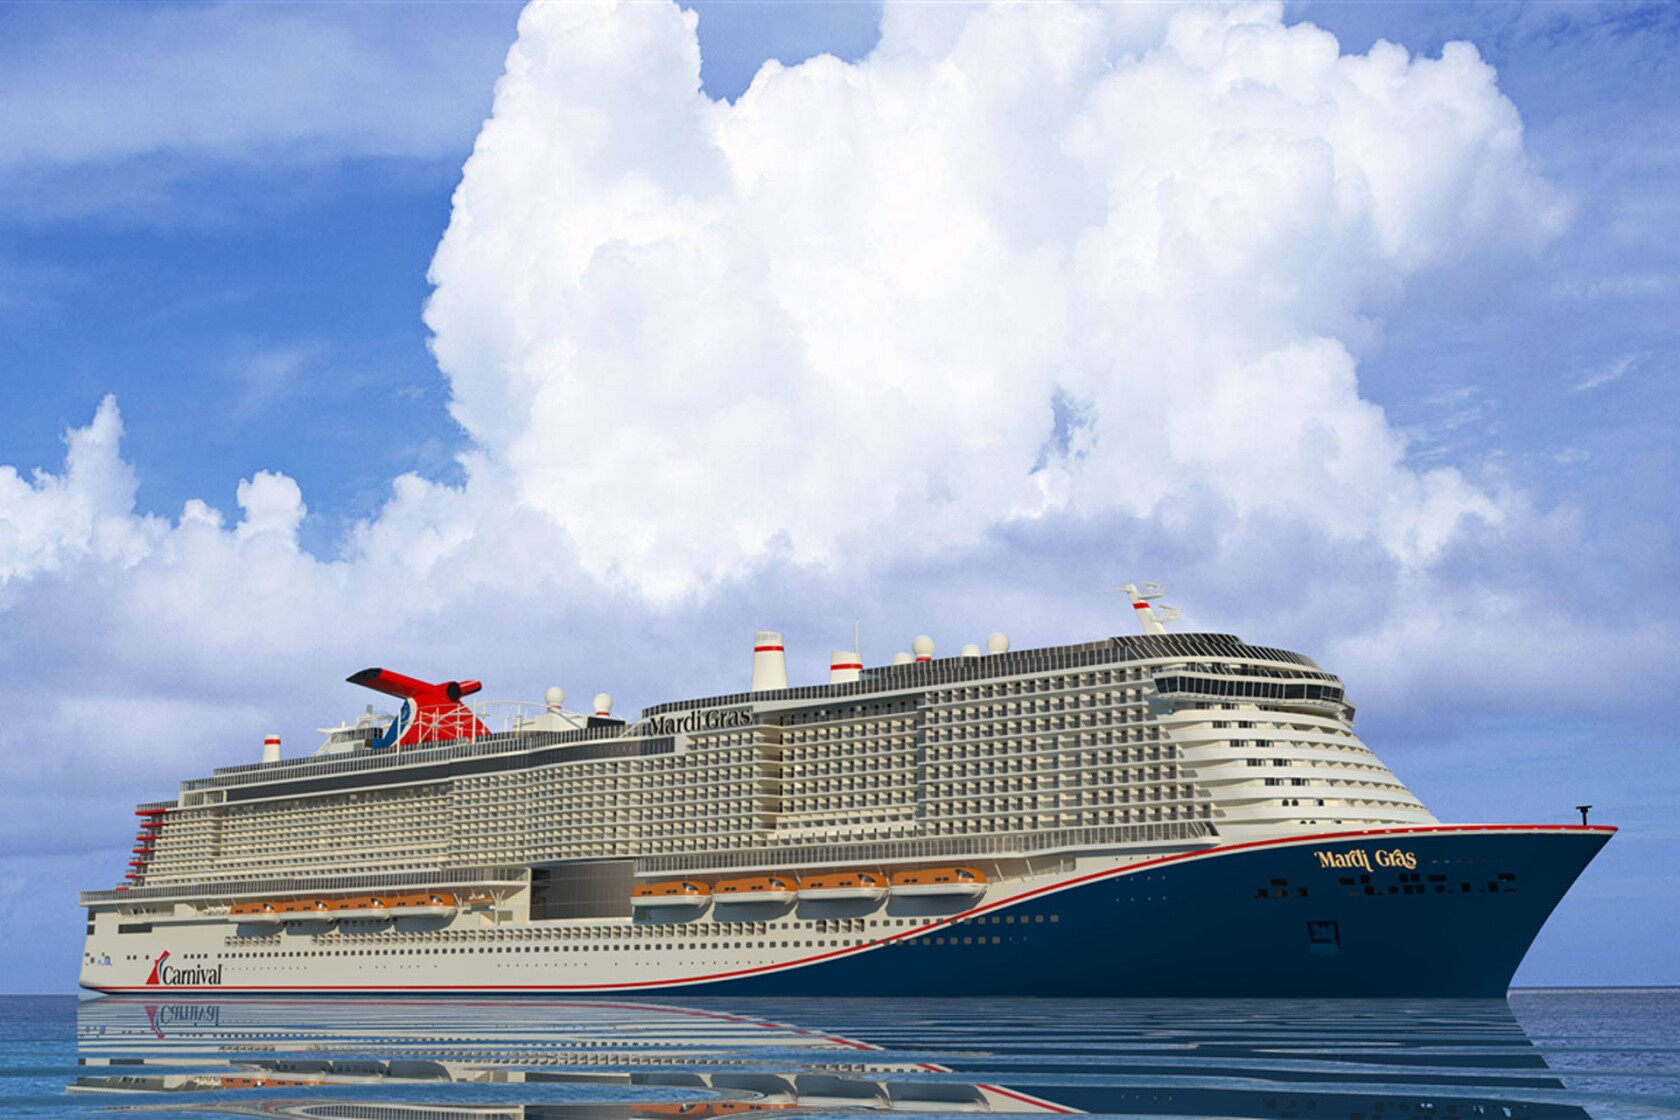 Carnival gives first look at staterooms coming to new cruise ... on carnival mediterranean cruises map, carnival victory ship map, carnival inspiration ship map, carnival liberty deck map, carnival valor map, carnival alaska cruise map, carnival cruise destination map, royal caribbean ship map, carnival ports of call map, carnival cozumel port map, carnival splendor map, carnival freedom ship layout, carnival freedom itinerary map, carnival cruise port map, carnival magic ship map, carnival cruise line map, carnival cruises ships deaths, carnival paradise deck map, carnival western caribbean map,